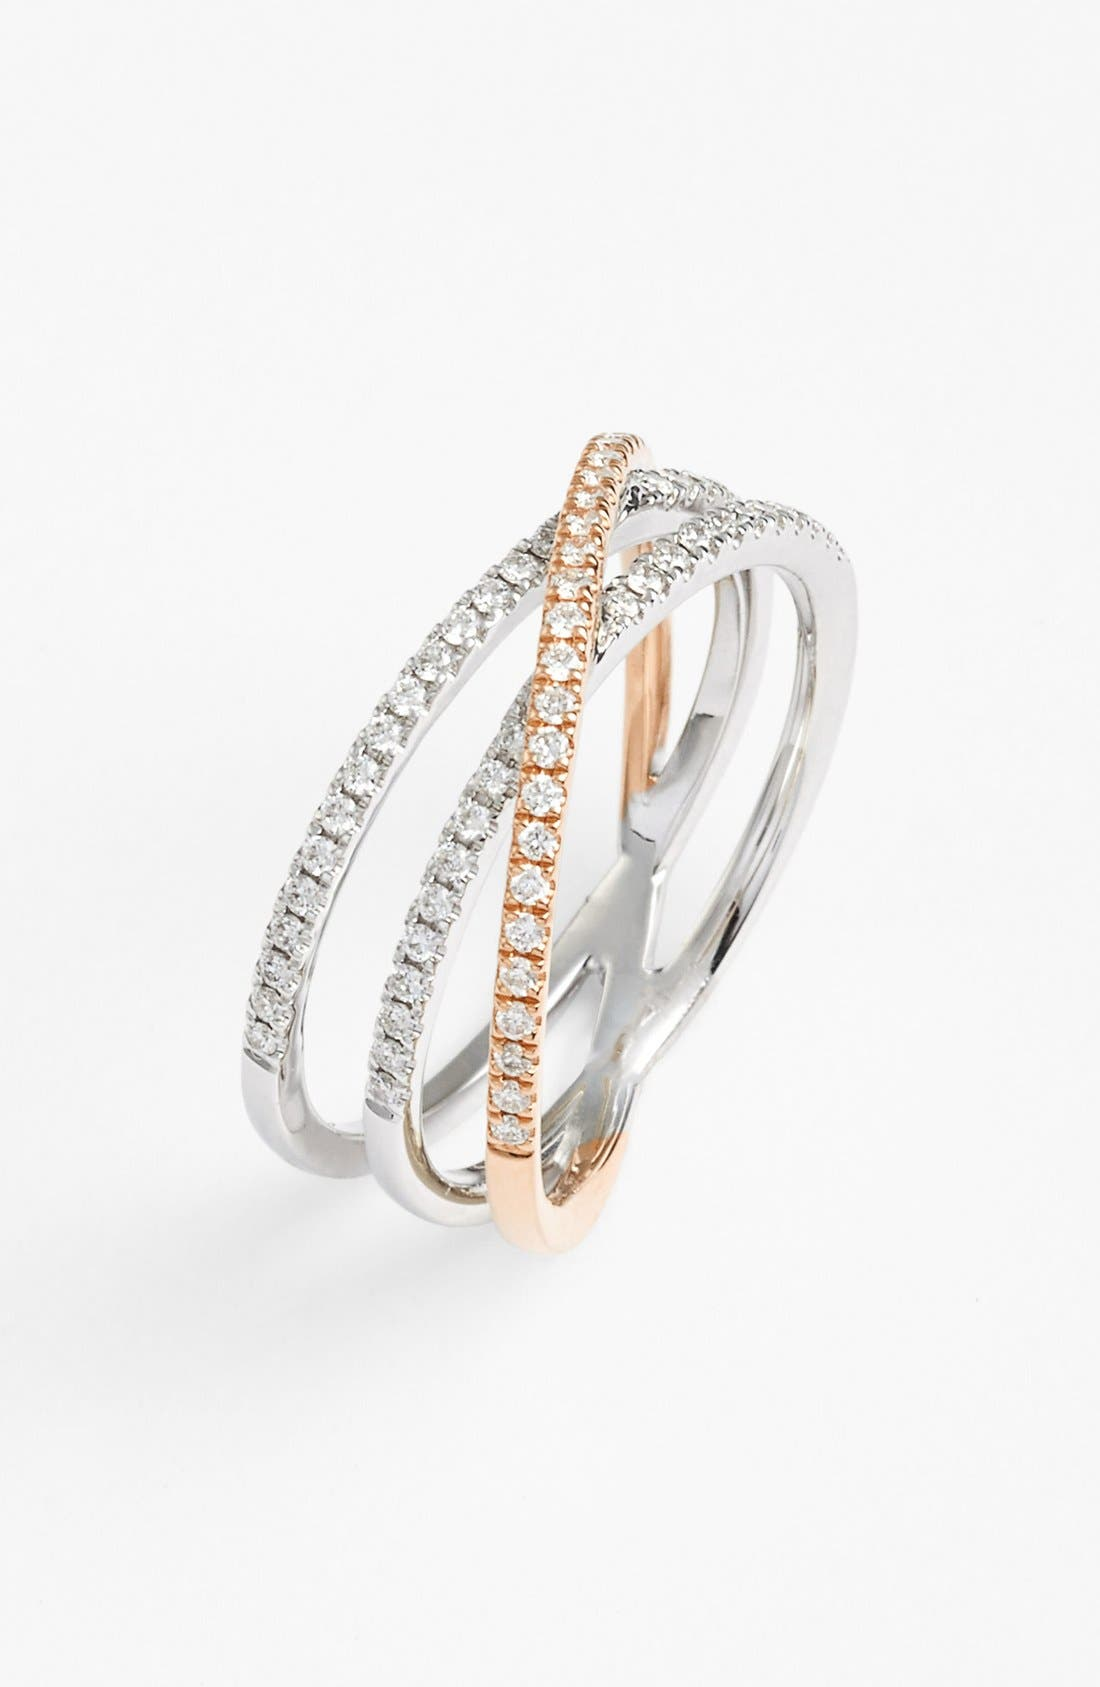 Crossover Three-Row Diamond Ring,                             Main thumbnail 1, color,                             White Gold/ Rose Gold